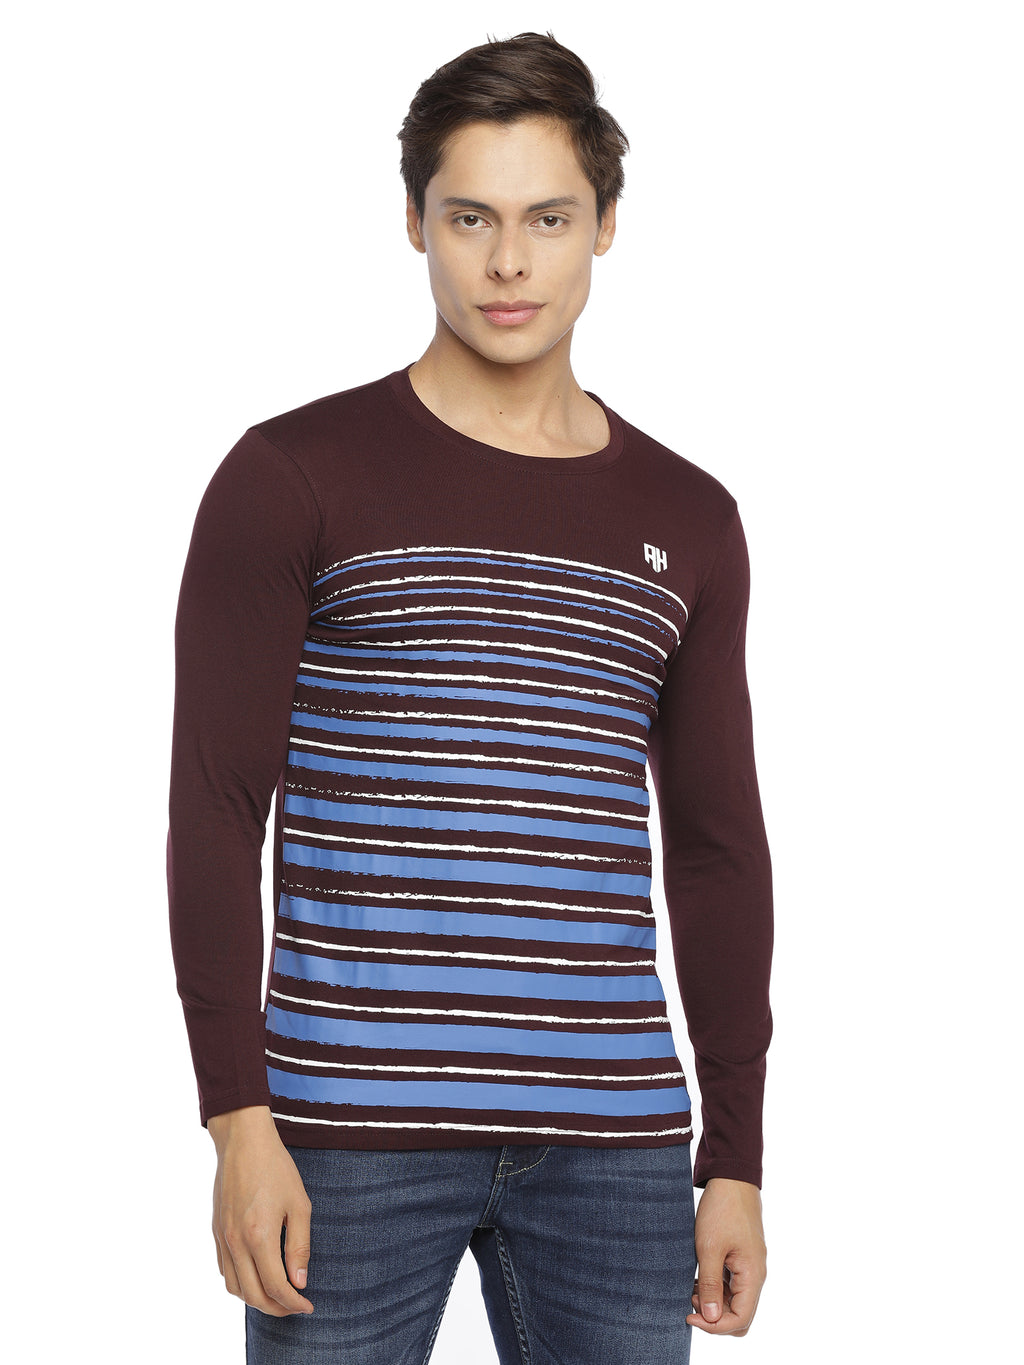 Rock Hooper Men's Striped Round Neck Full Sleeve Cotton Tshirt